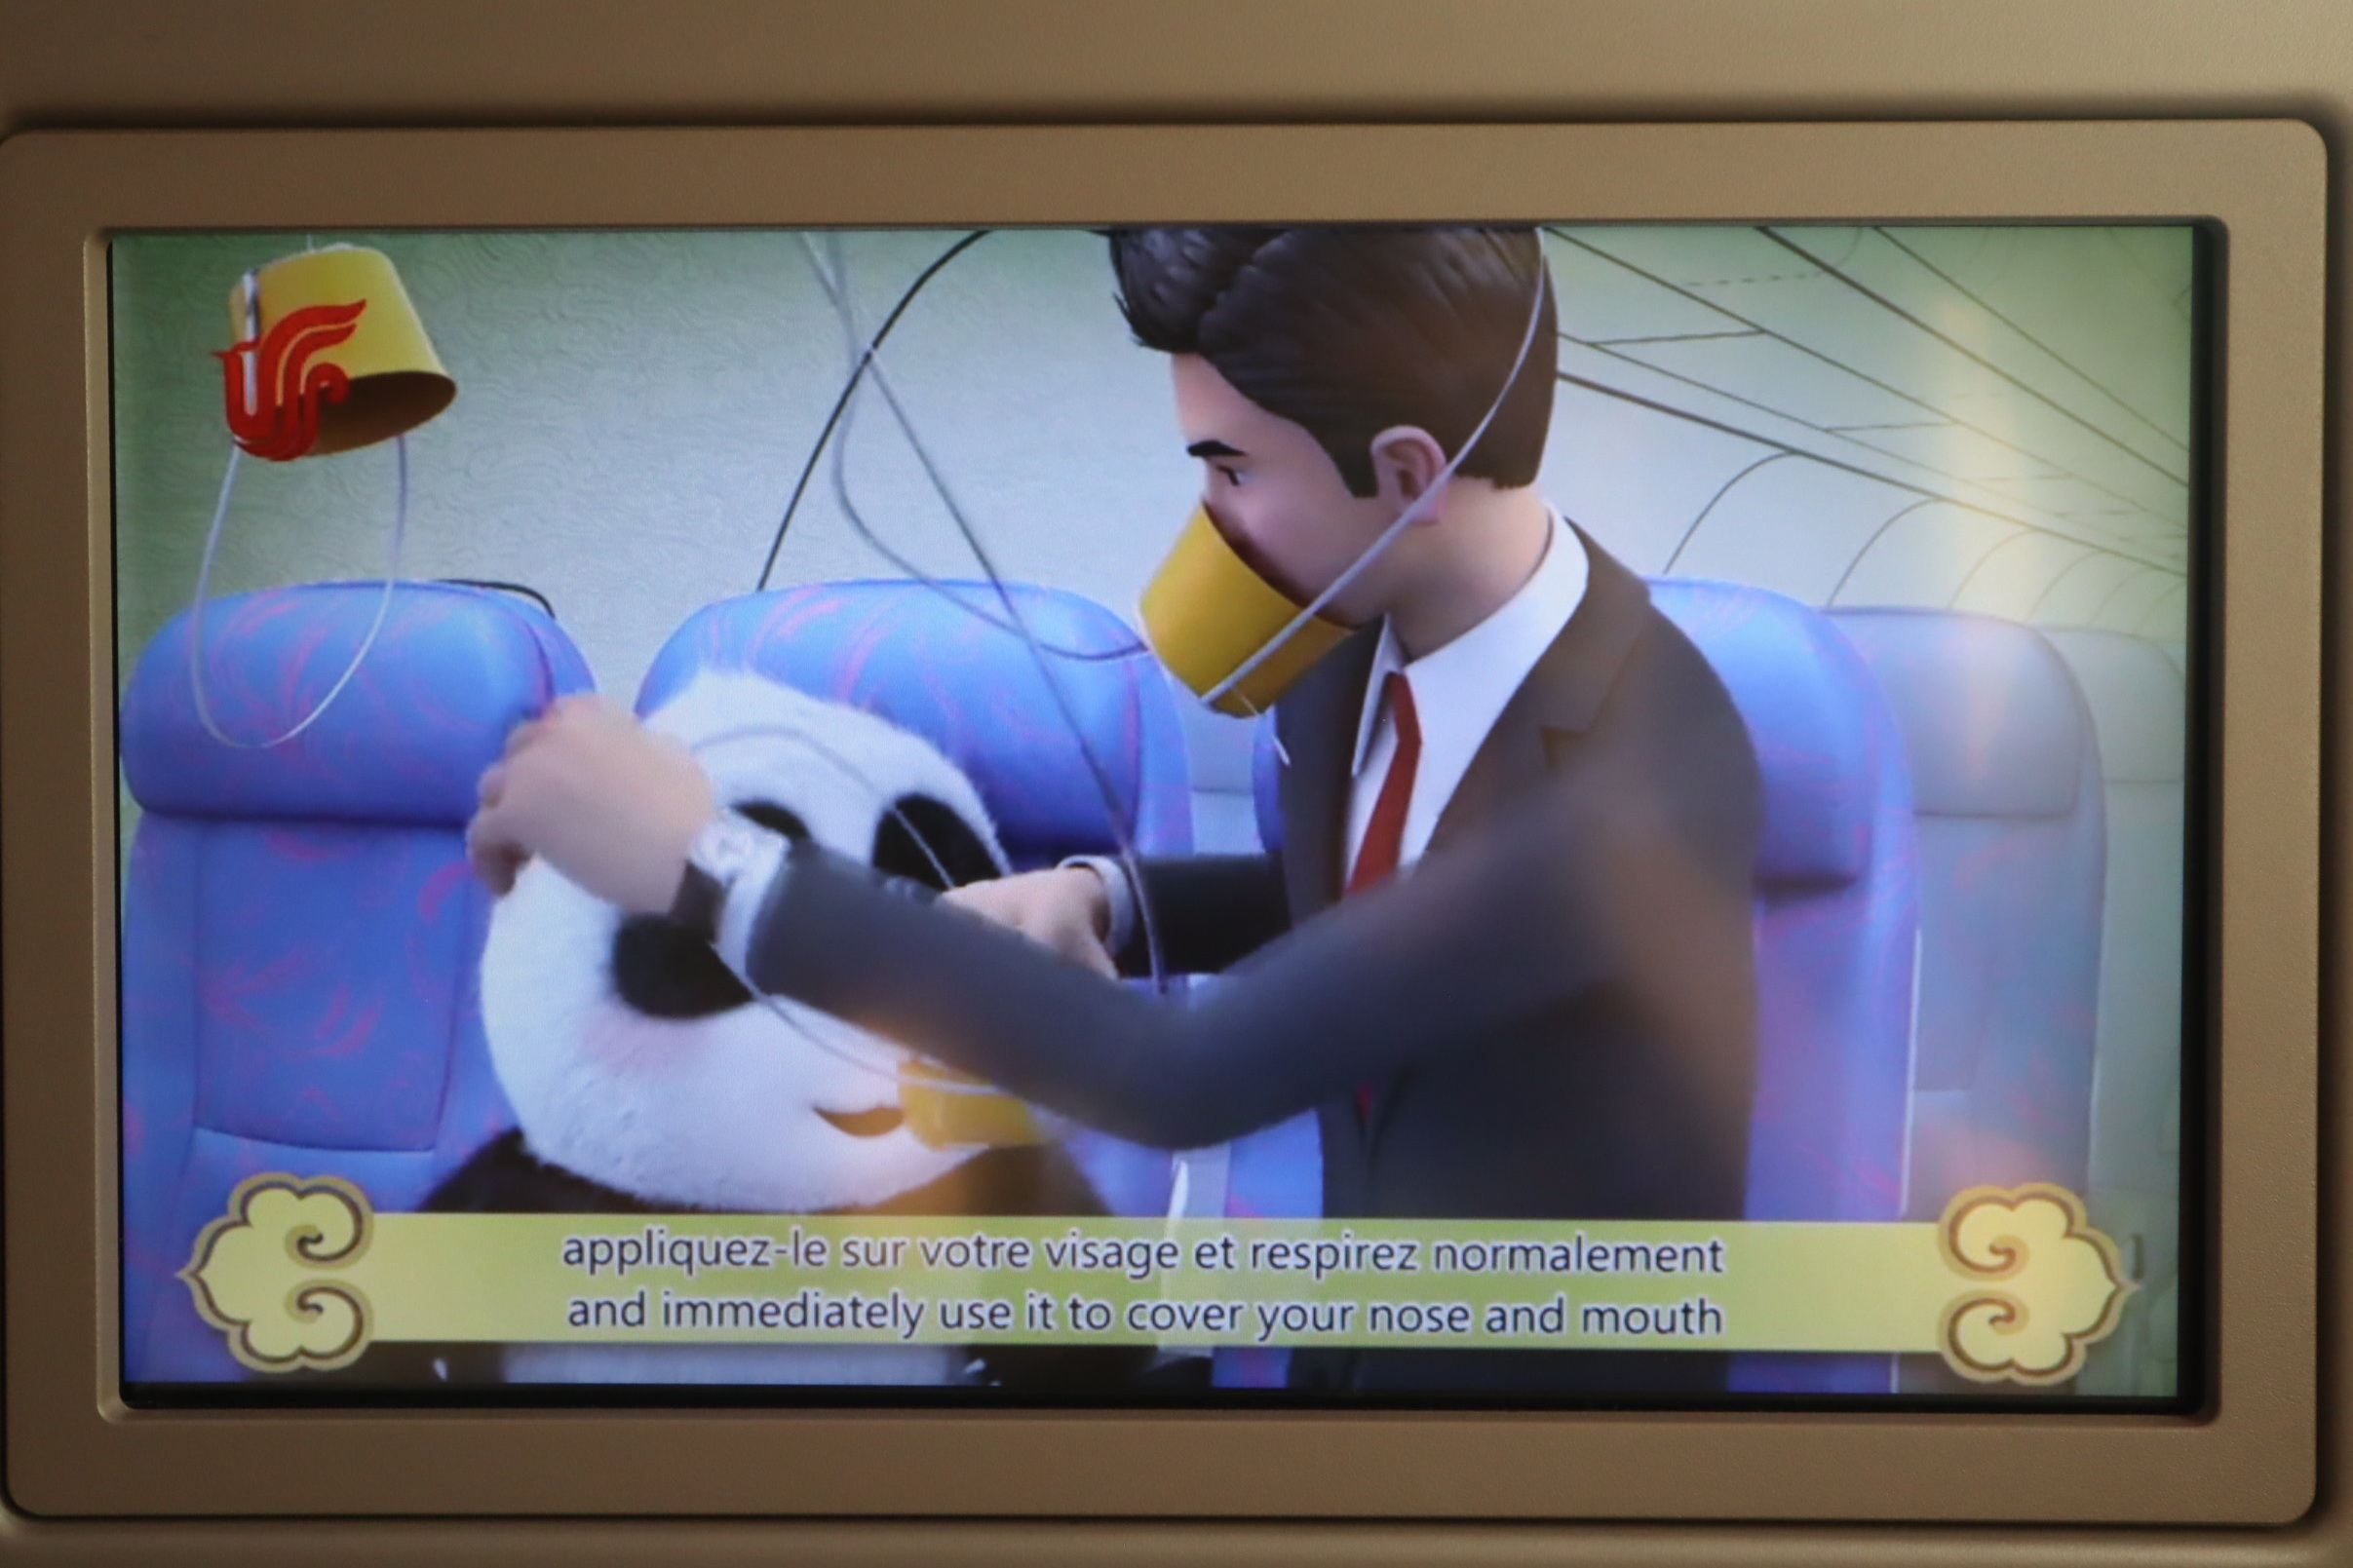 Air China business class – Safety video